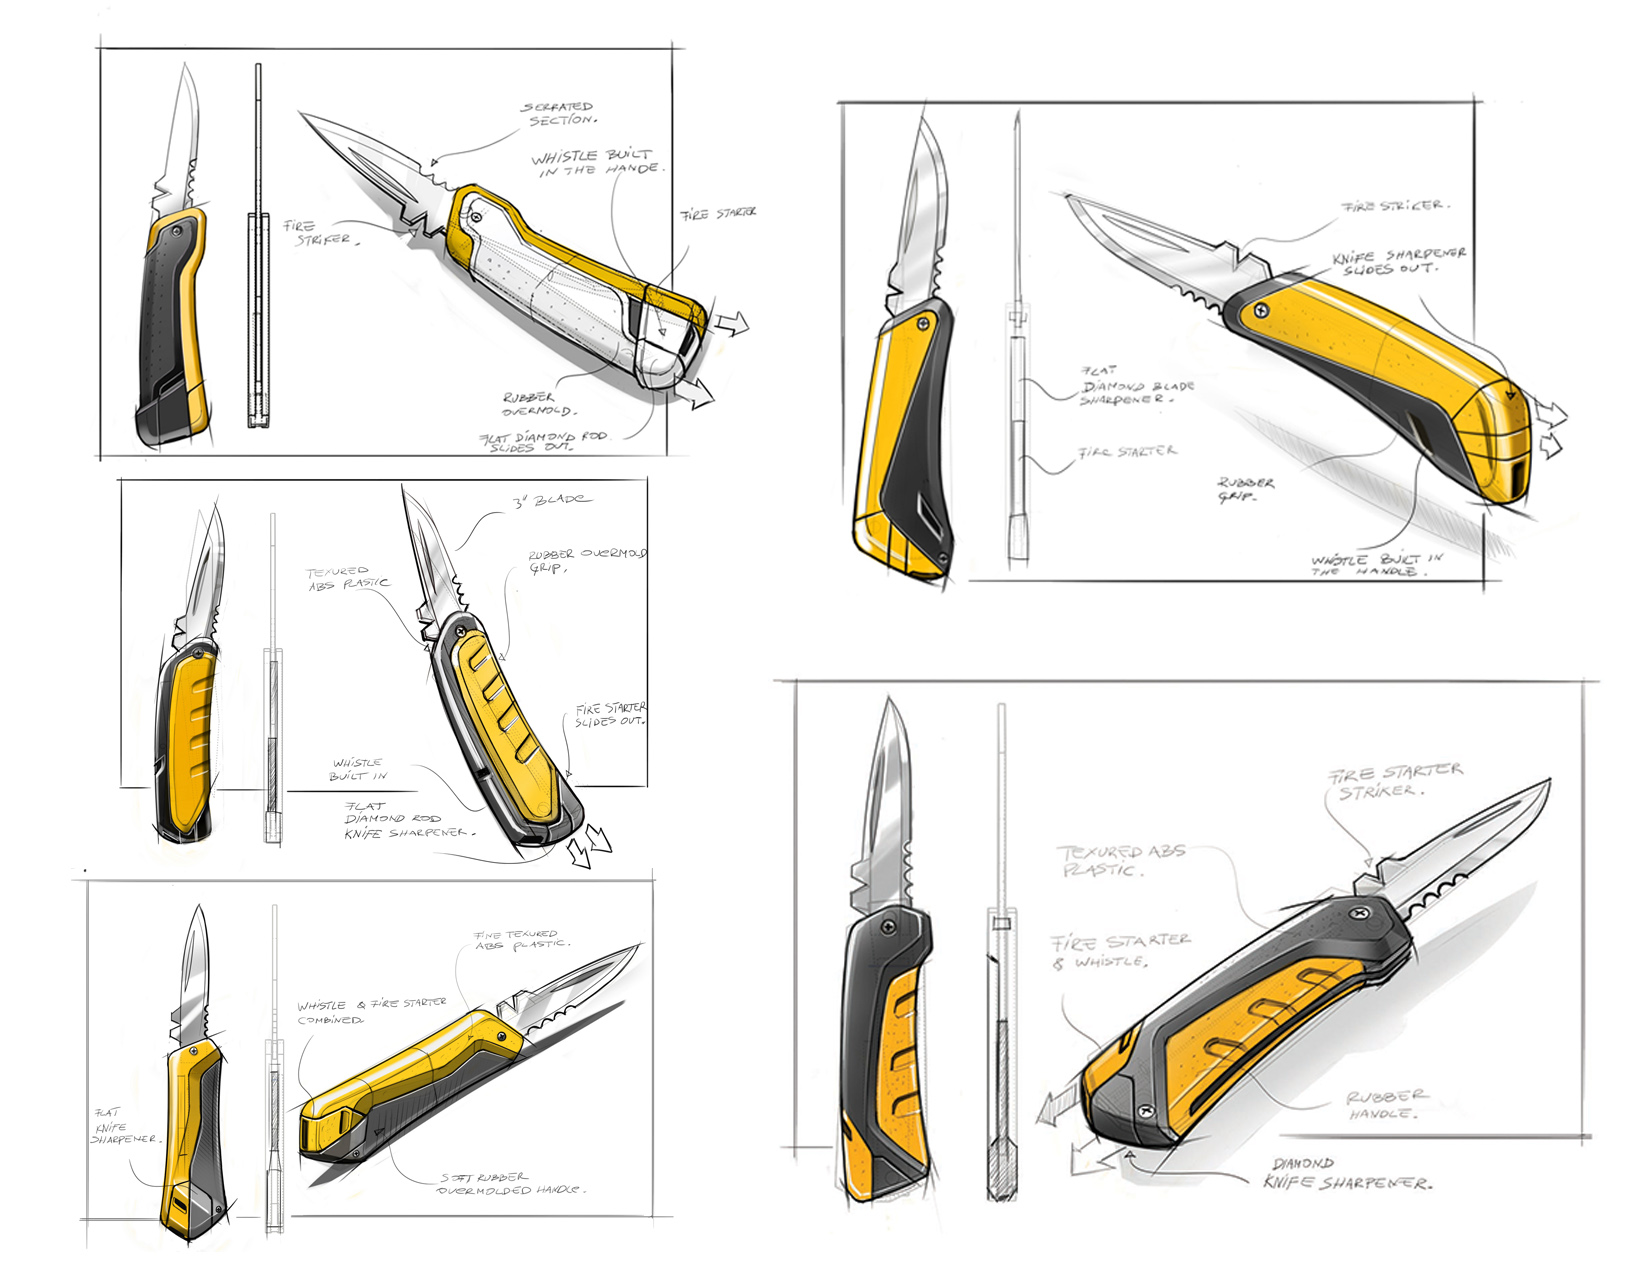 Cardboard Helicopter Product Design Cleveland Ohio - Smith's Knife Concepts1.jpg